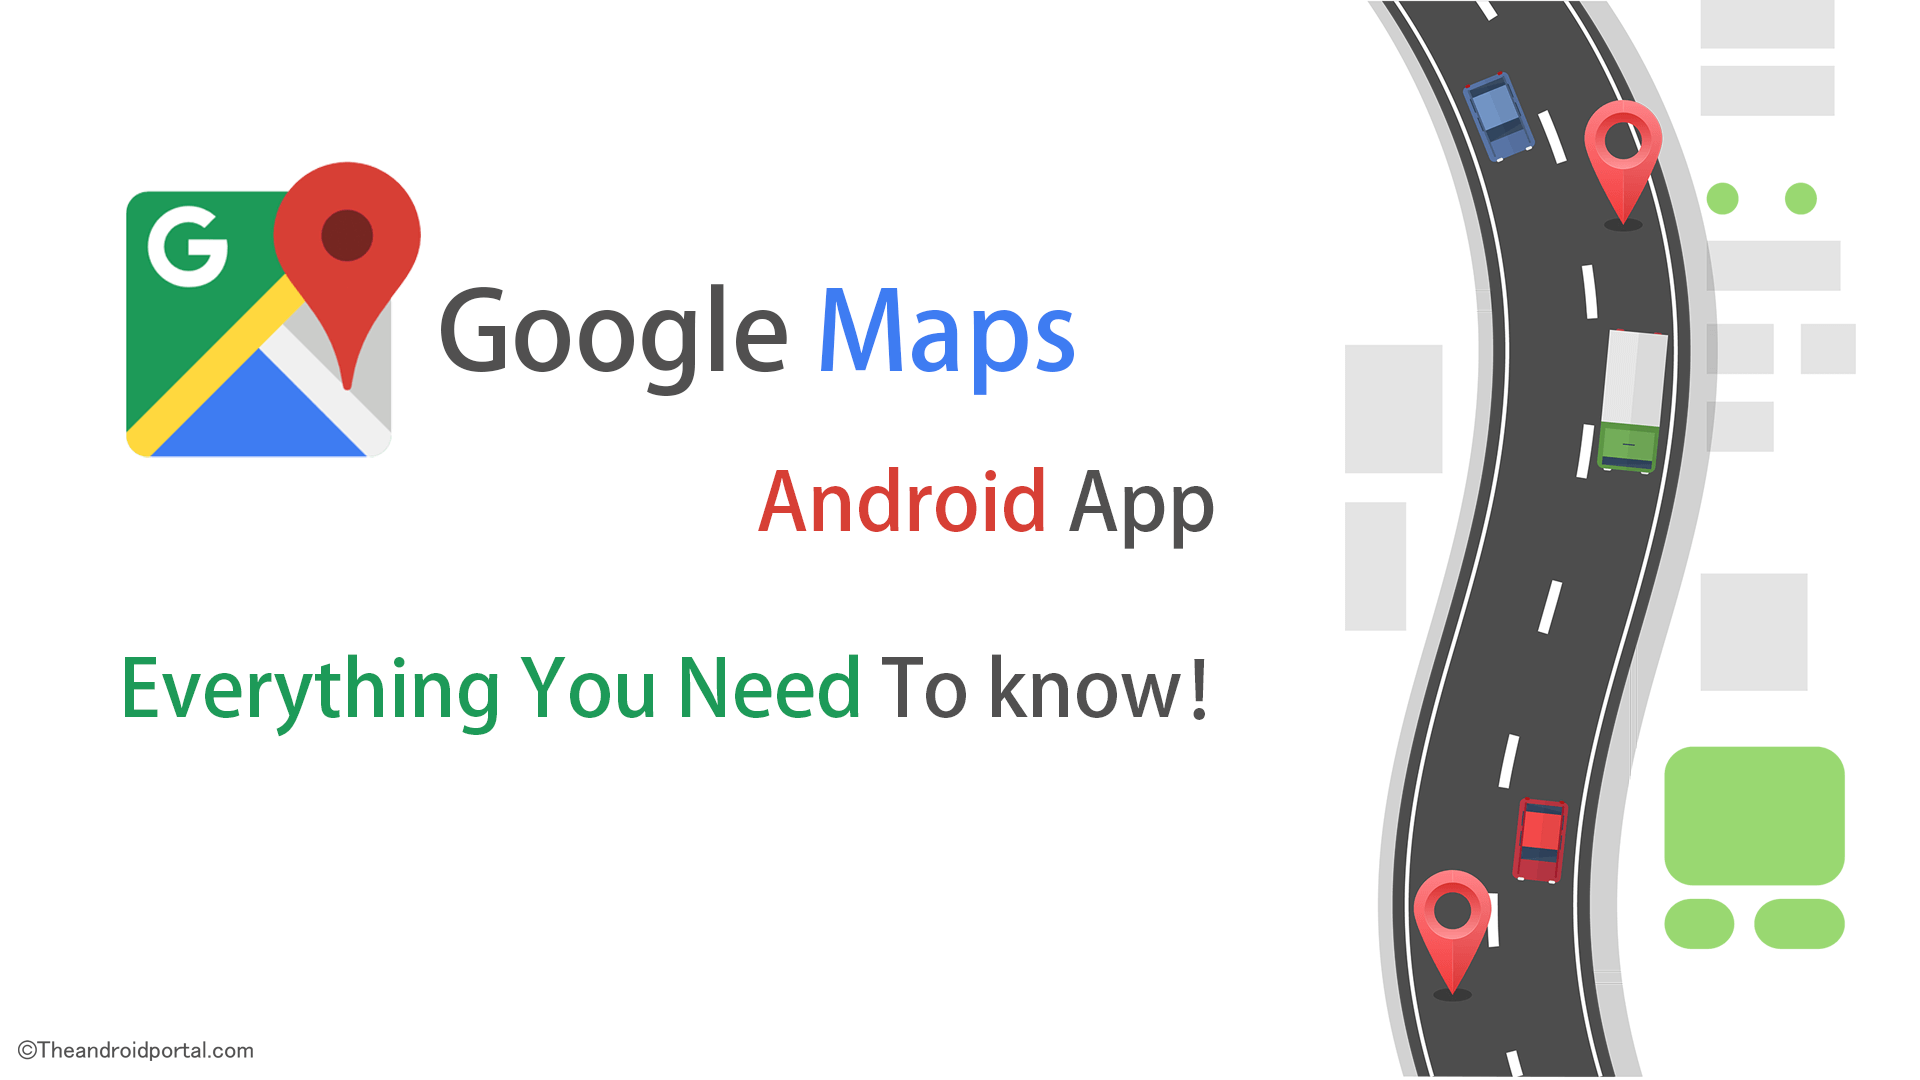 Google Maps Android App - Everything You Need To know - theandroidportal.com